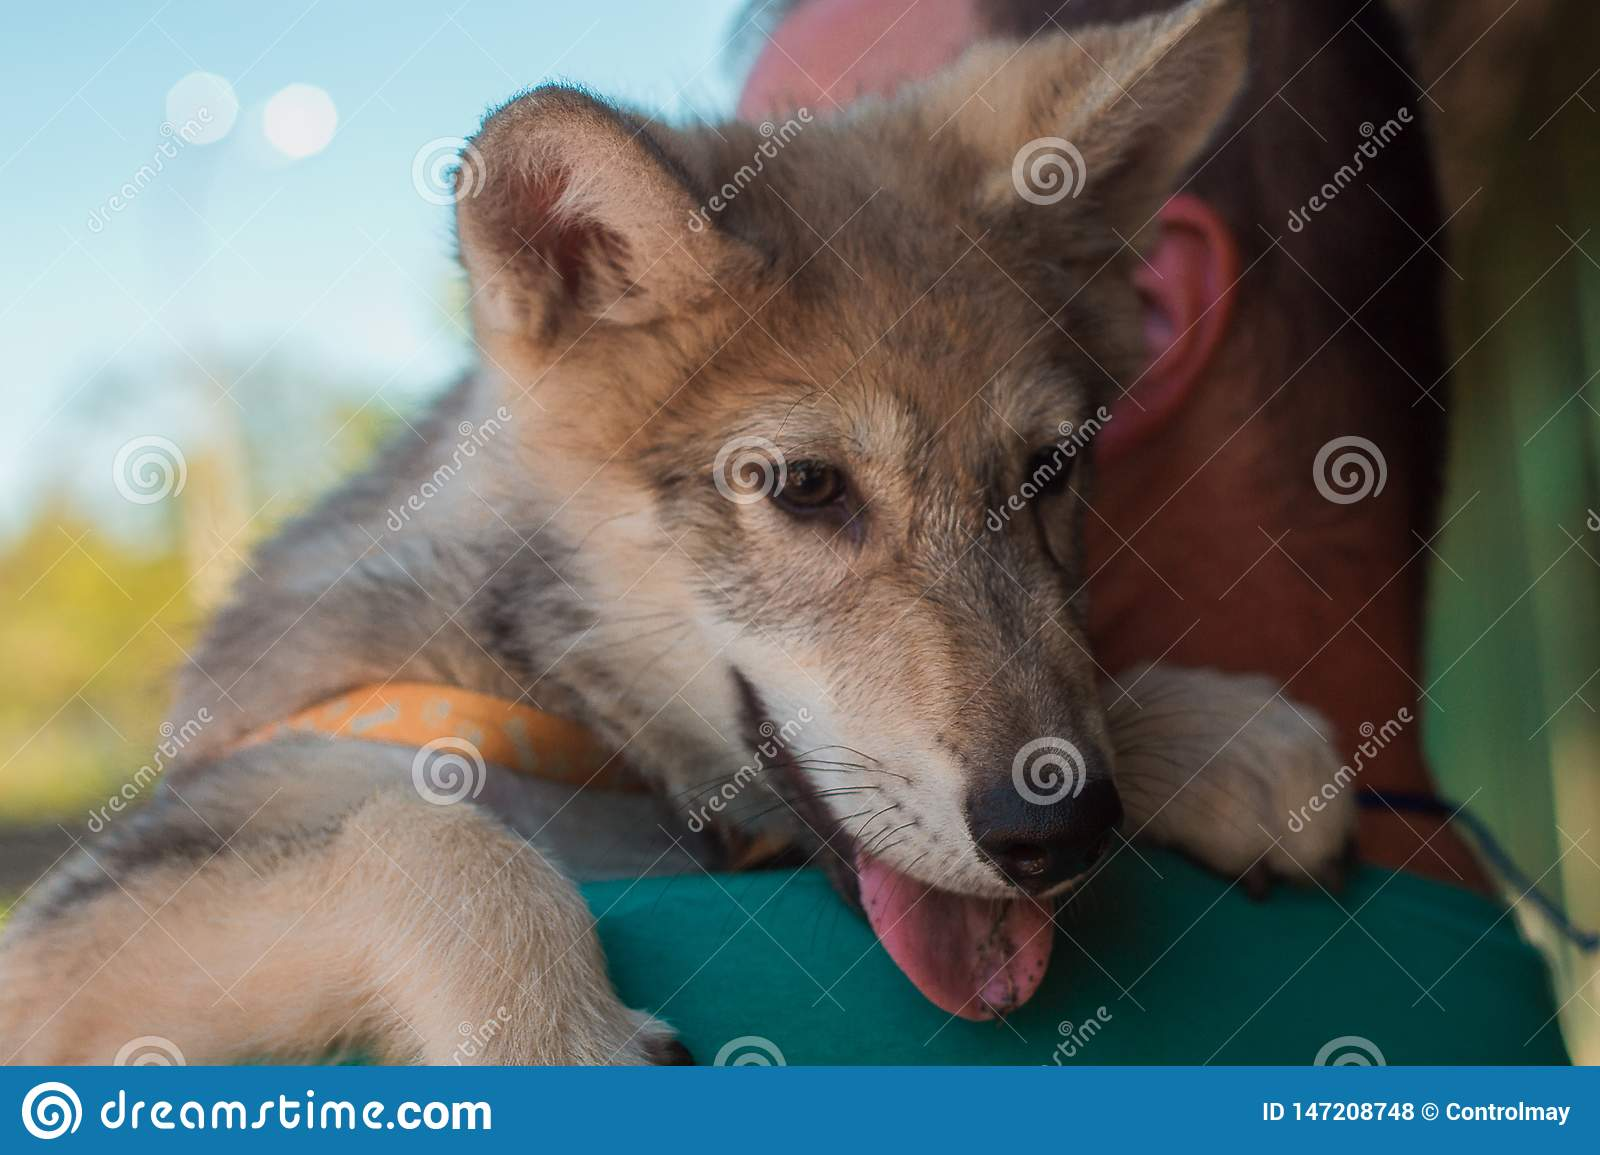 Little wolf in the arms of a man